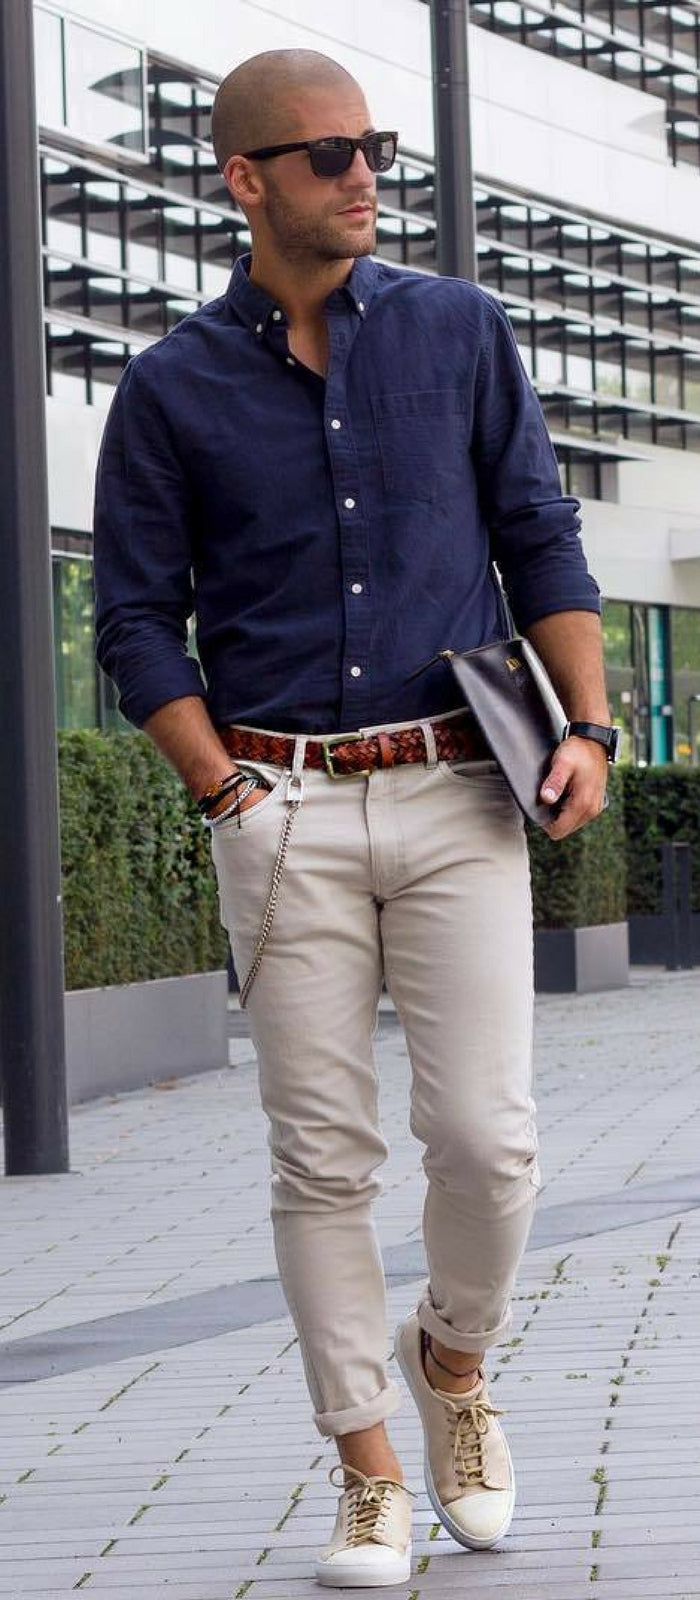 15 Coolest Outfit Ideas For The Summers u2013 LIFESTYLE BY PS